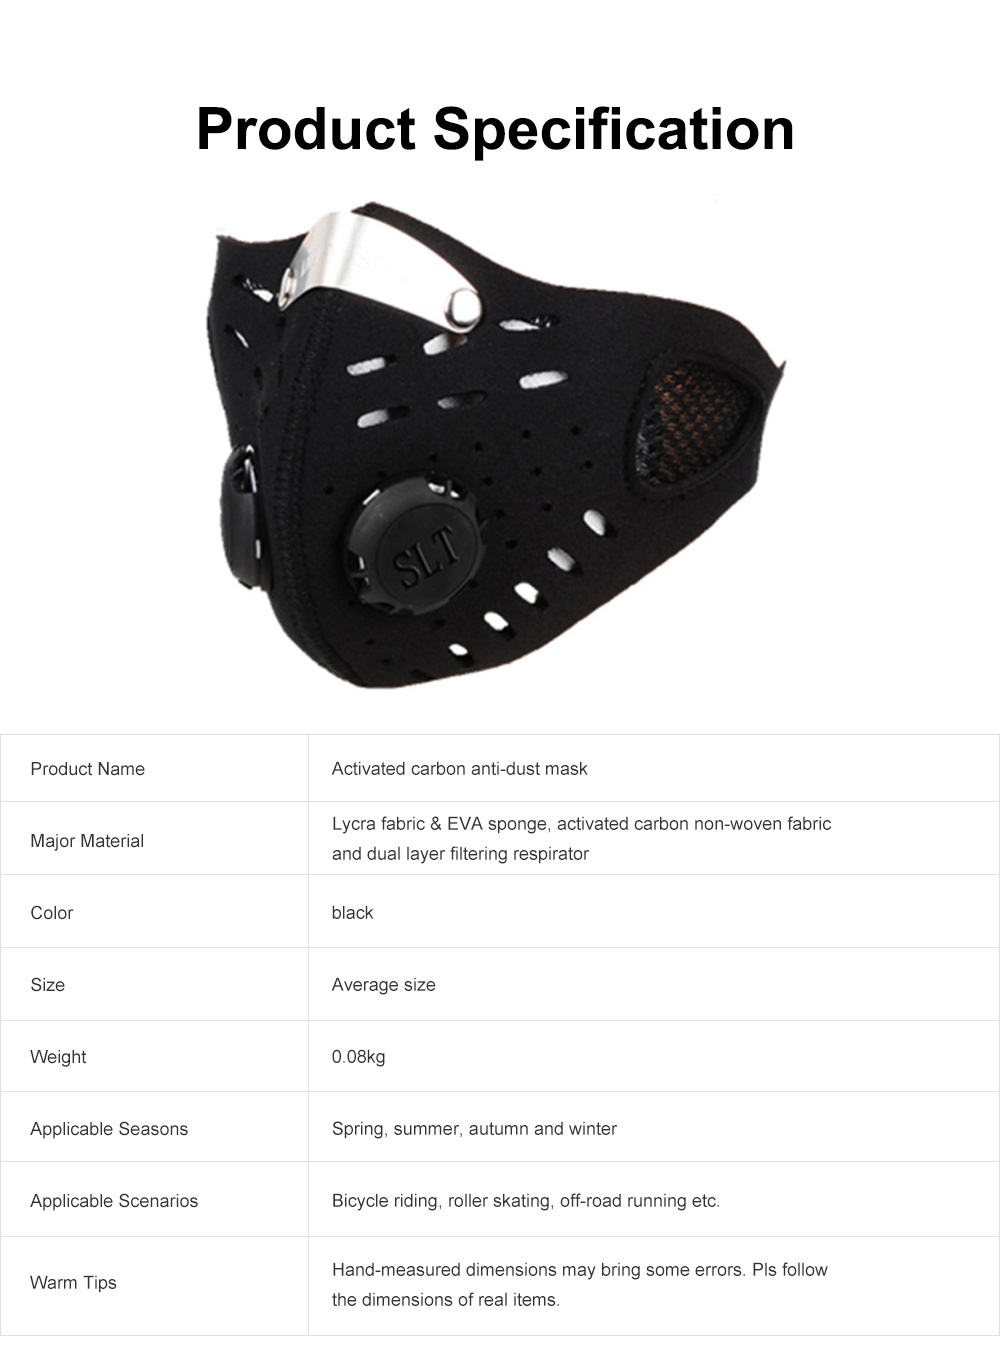 Activated Carbon Facial Mask for Outdoor Bicycle Riding Filter Element Replaceable Mouth-muffle Nose Clamp Design Anti-dust & Anti-smog Respirator 6